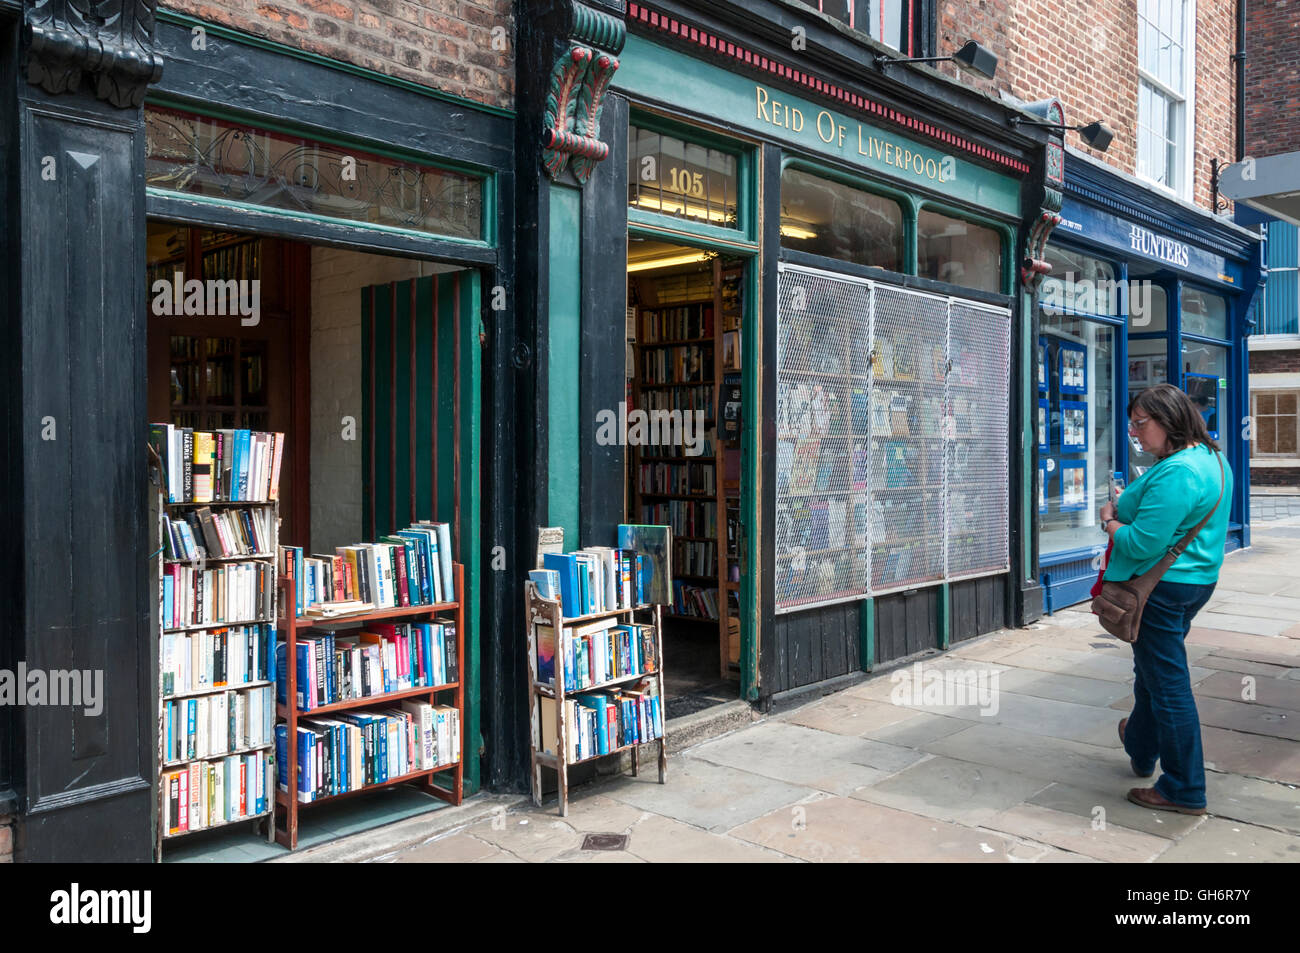 Customer looking at books stacked outside Reid of Liverpool secondhand bookshop. Stock Photo